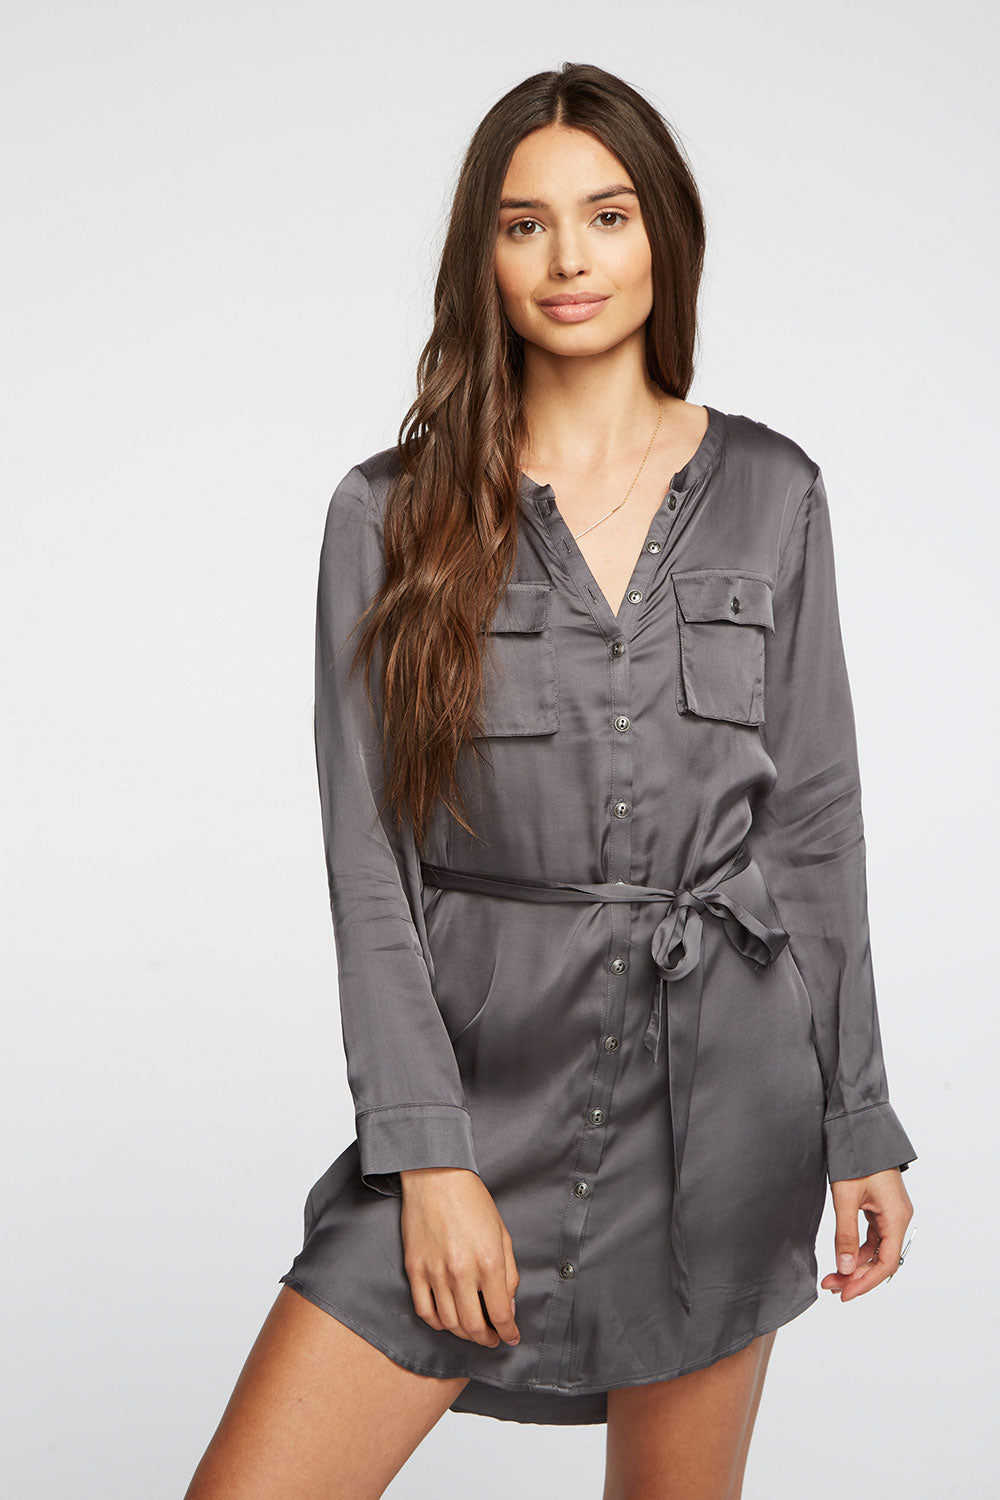 Silky Basics Button Front Henley Shirttail Hi Lo Dress WOMENS chaserbrand4.myshopify.com